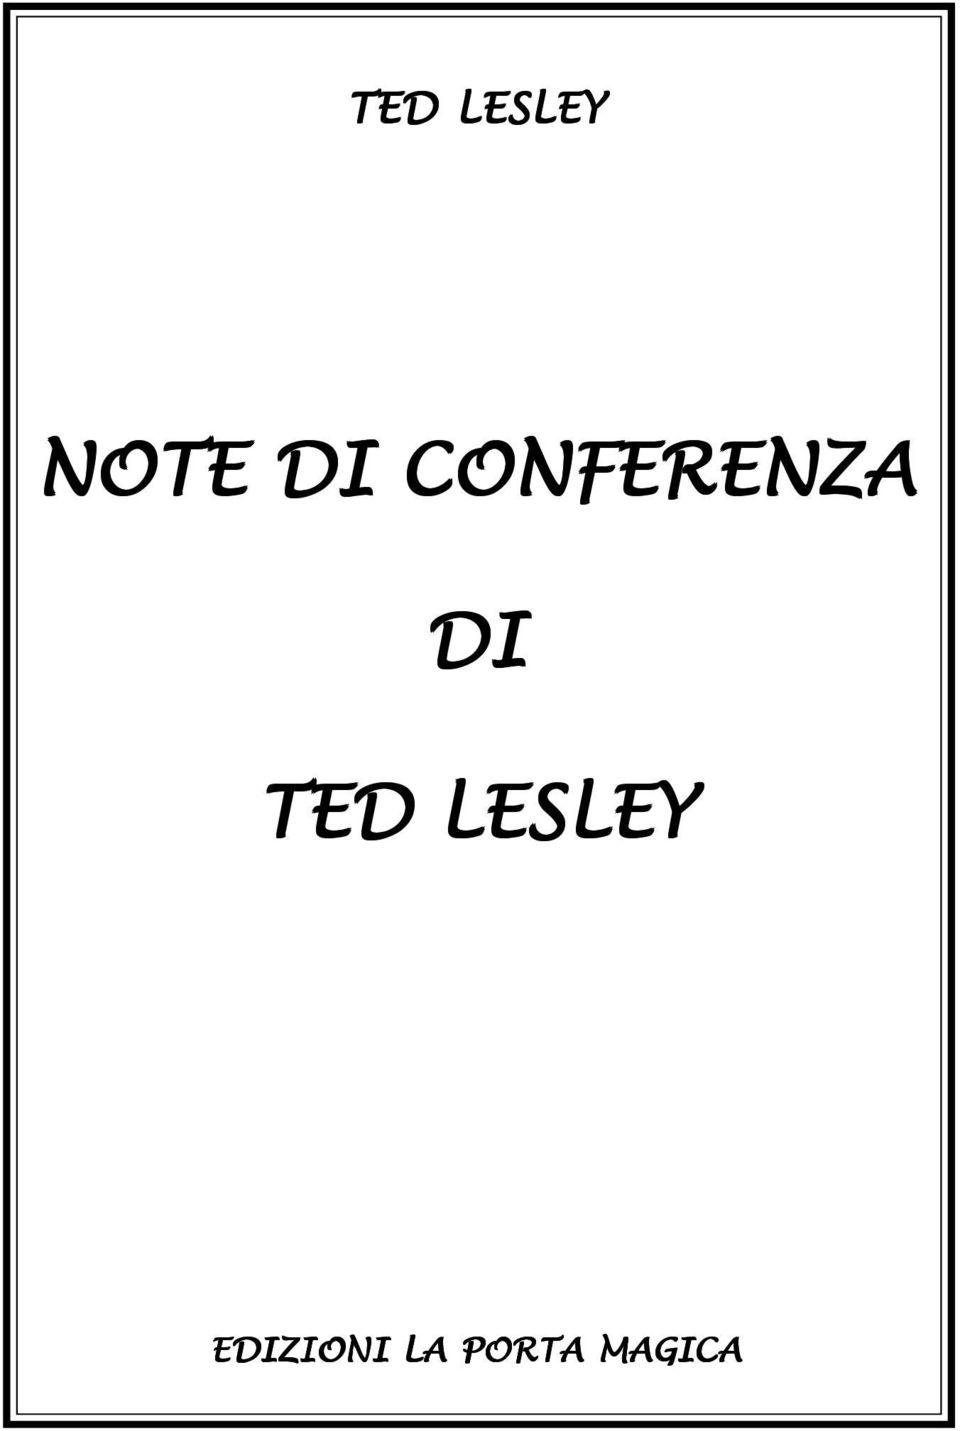 TED LESLEY